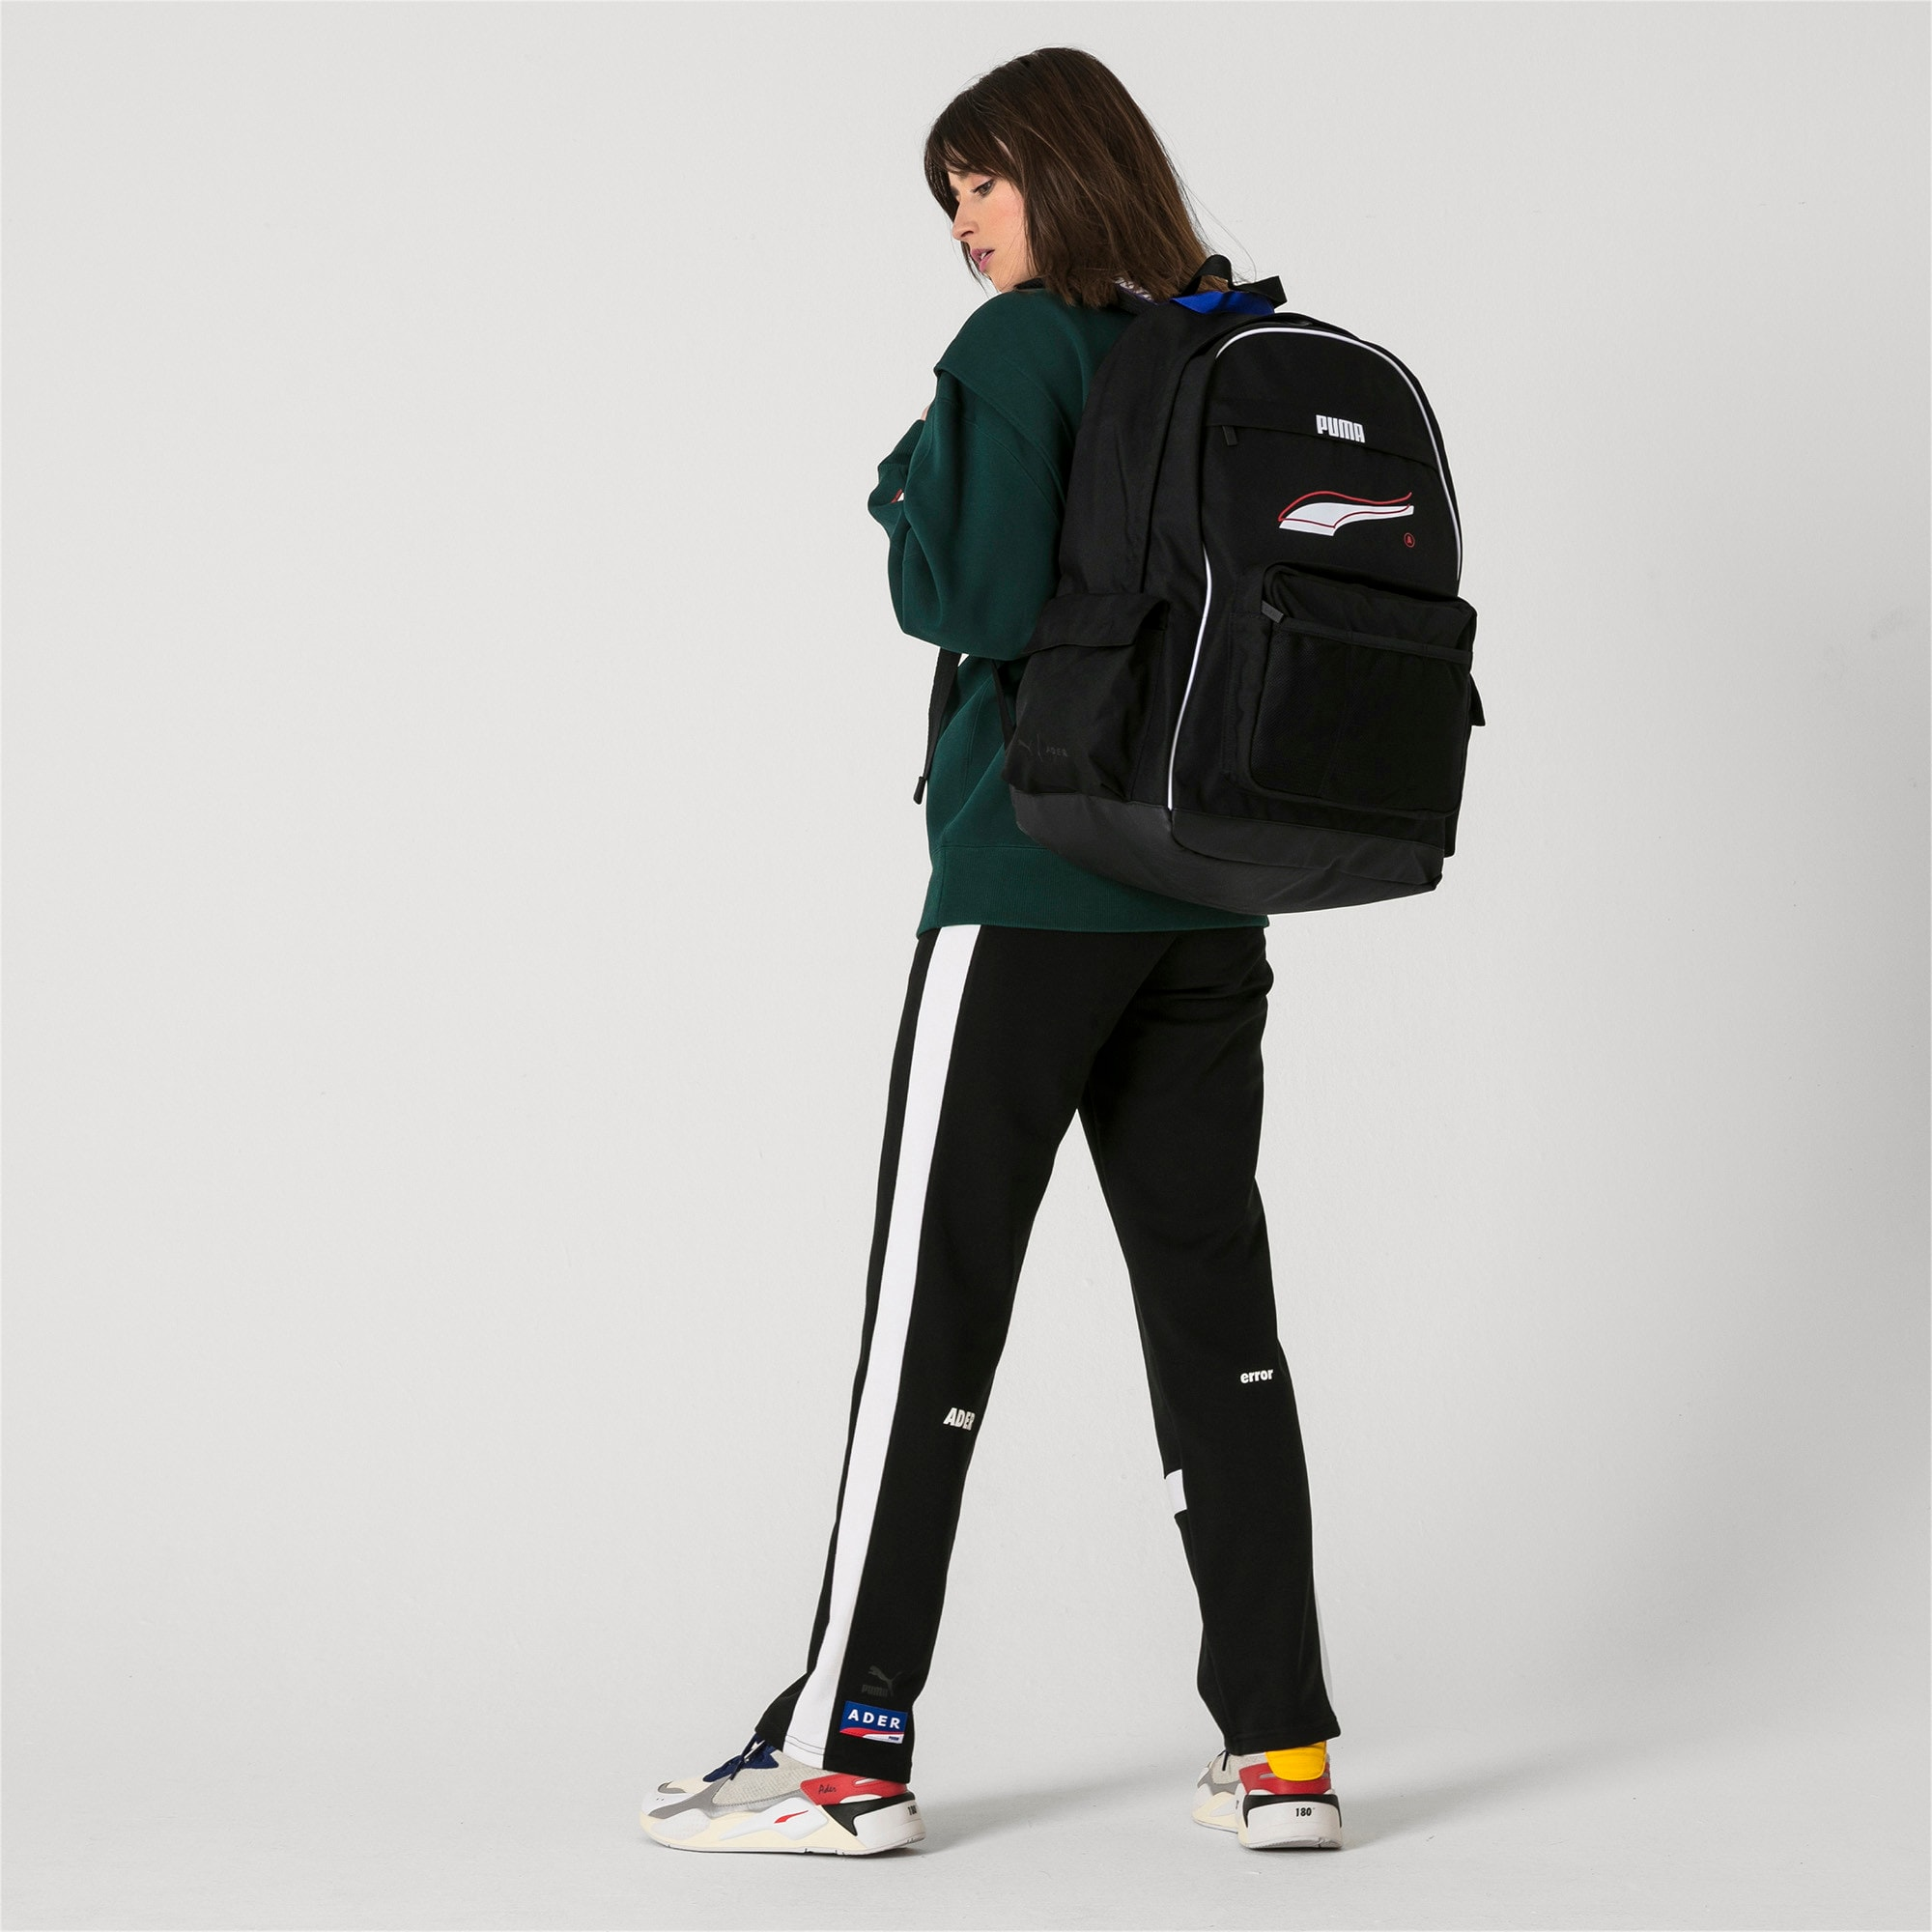 Thumbnail 7 of PUMA x ADER ERROR Backpack, Puma Black, medium